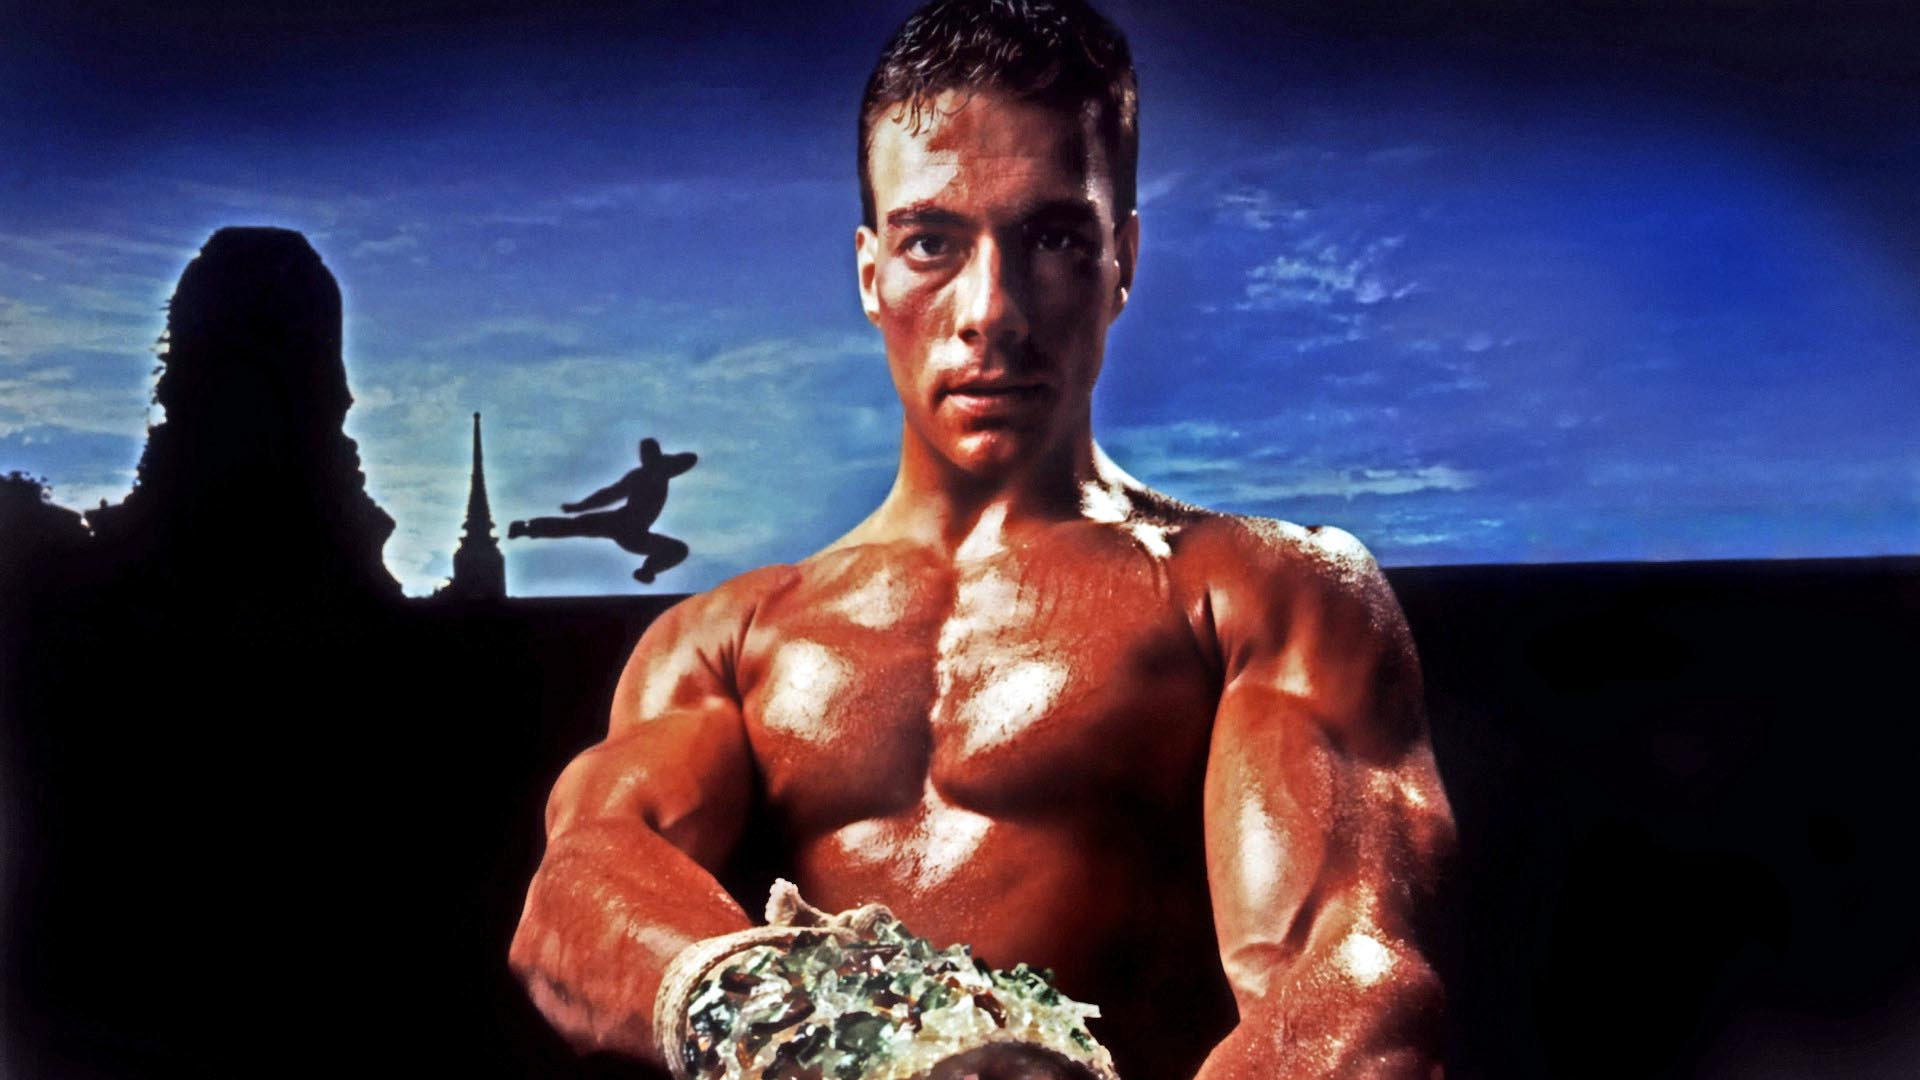 Jean-Claude Van Damme in the original Kickboxer movie.